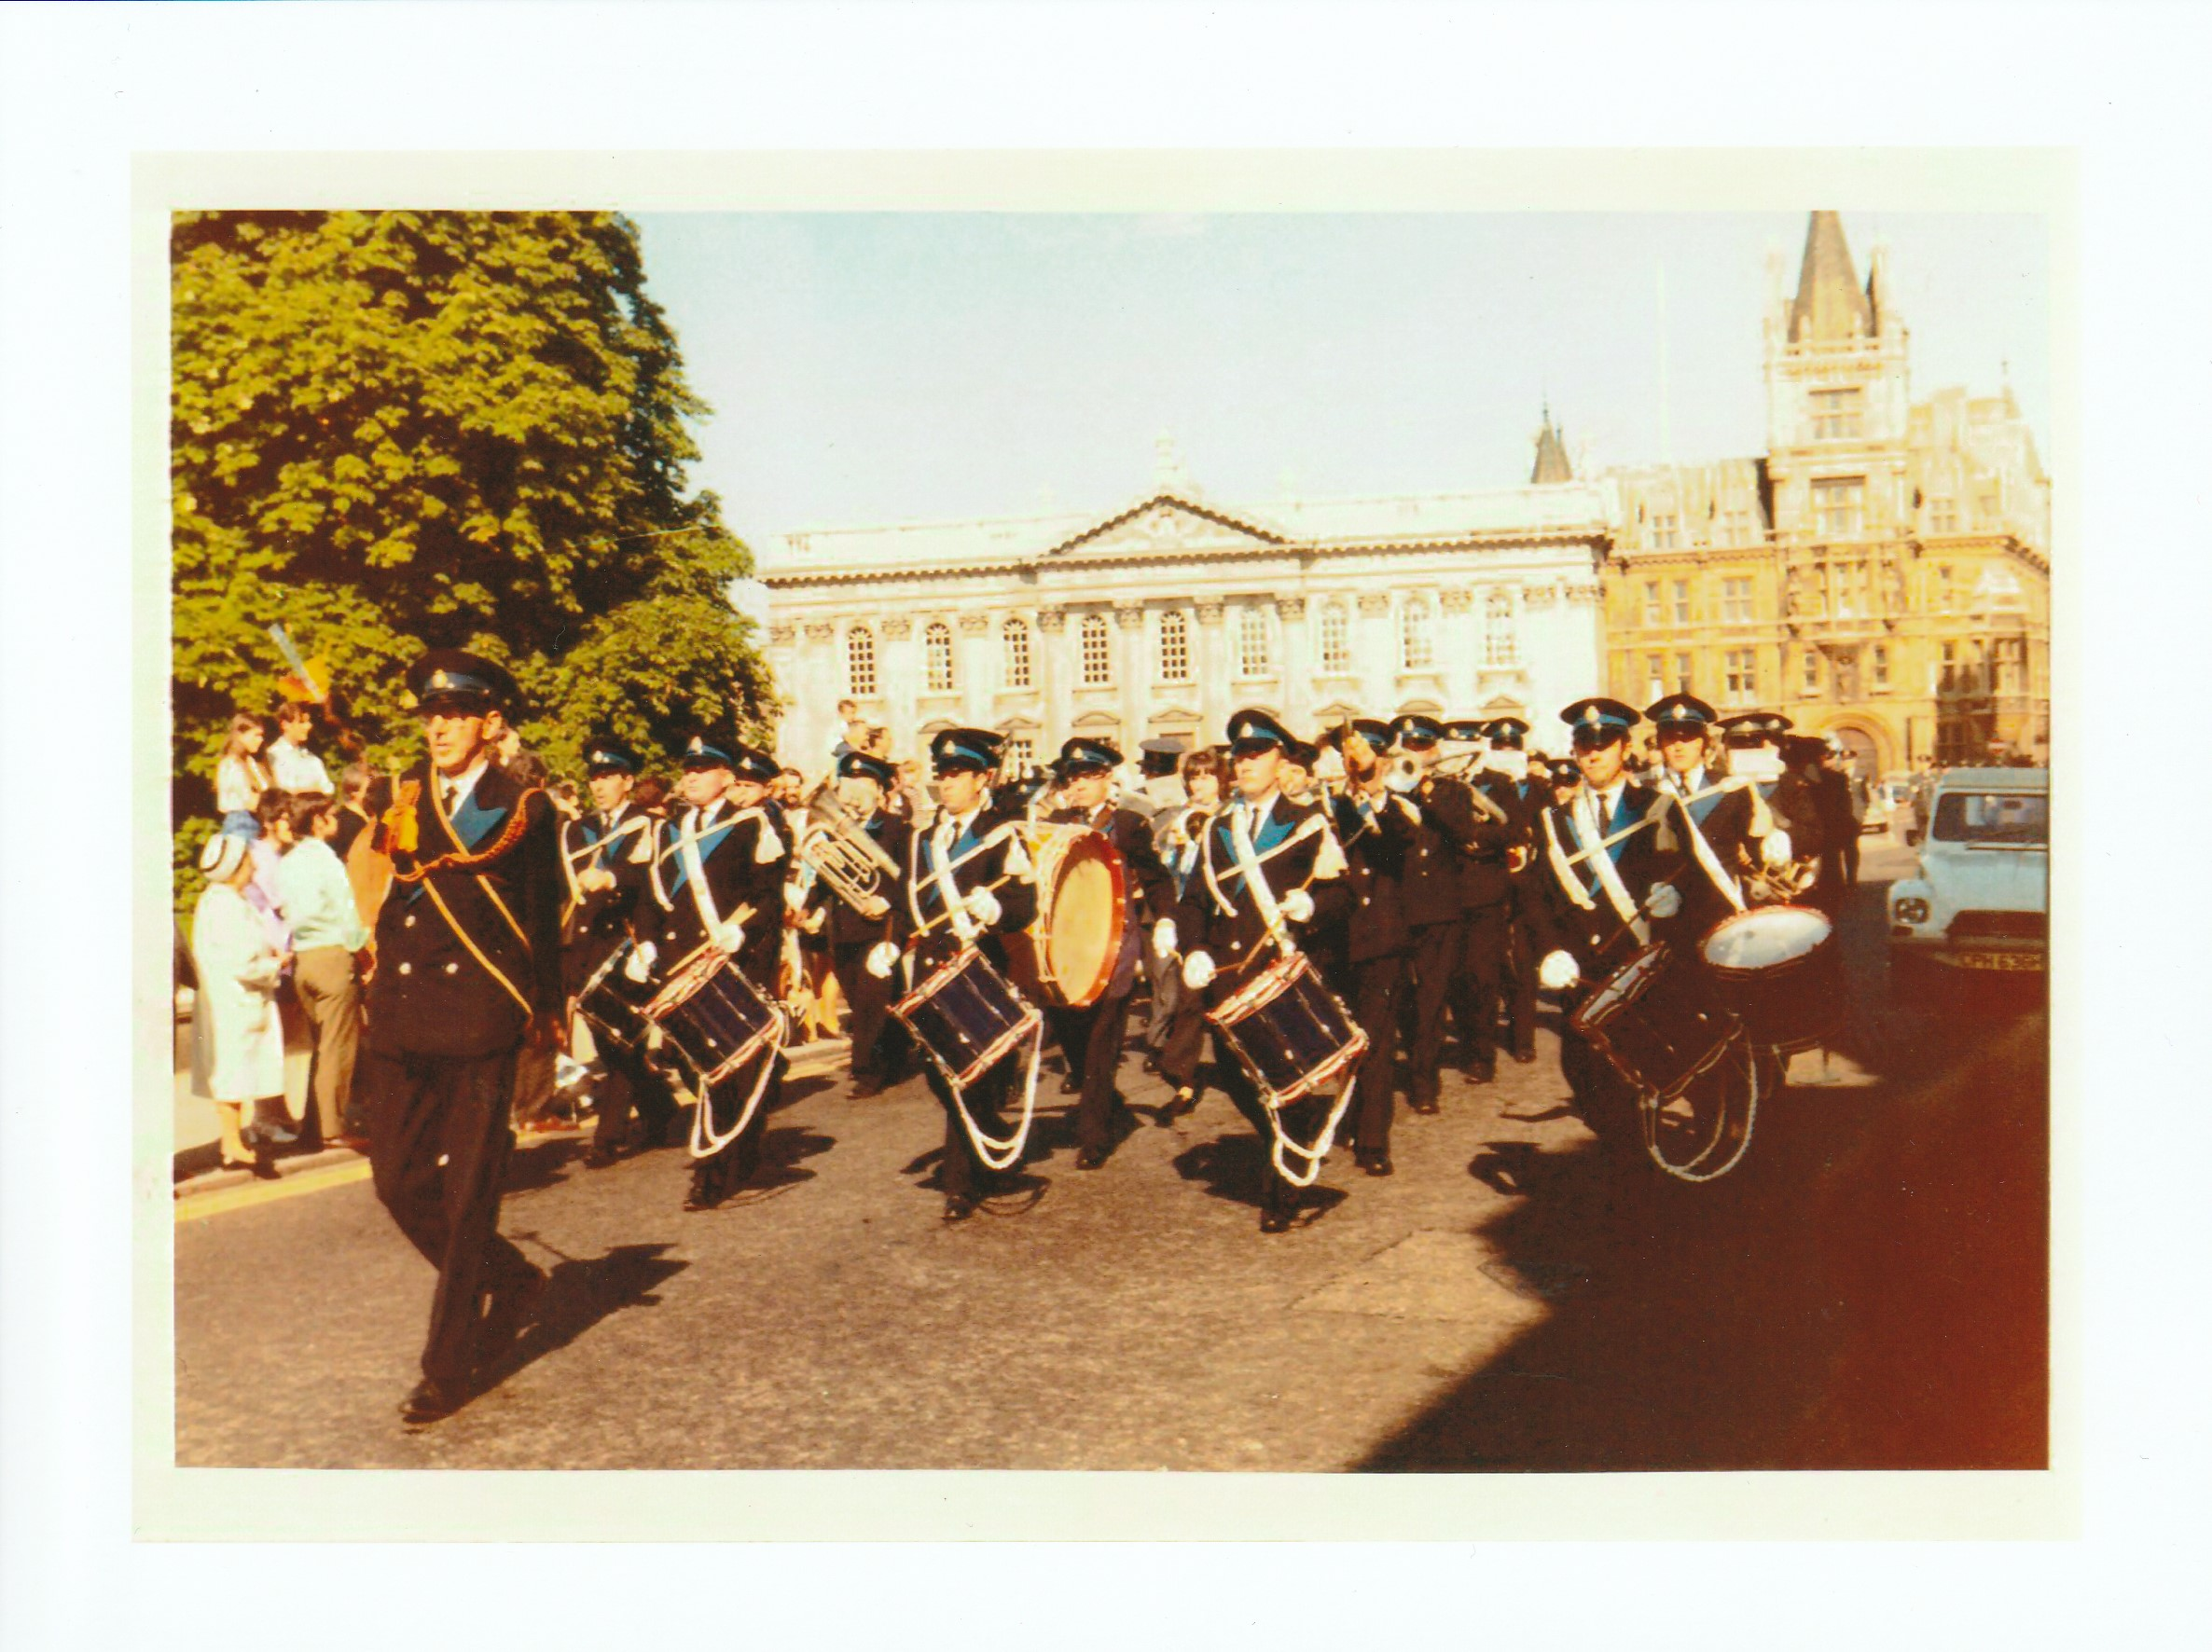 Ely Band, Cambridge, Early 1970s